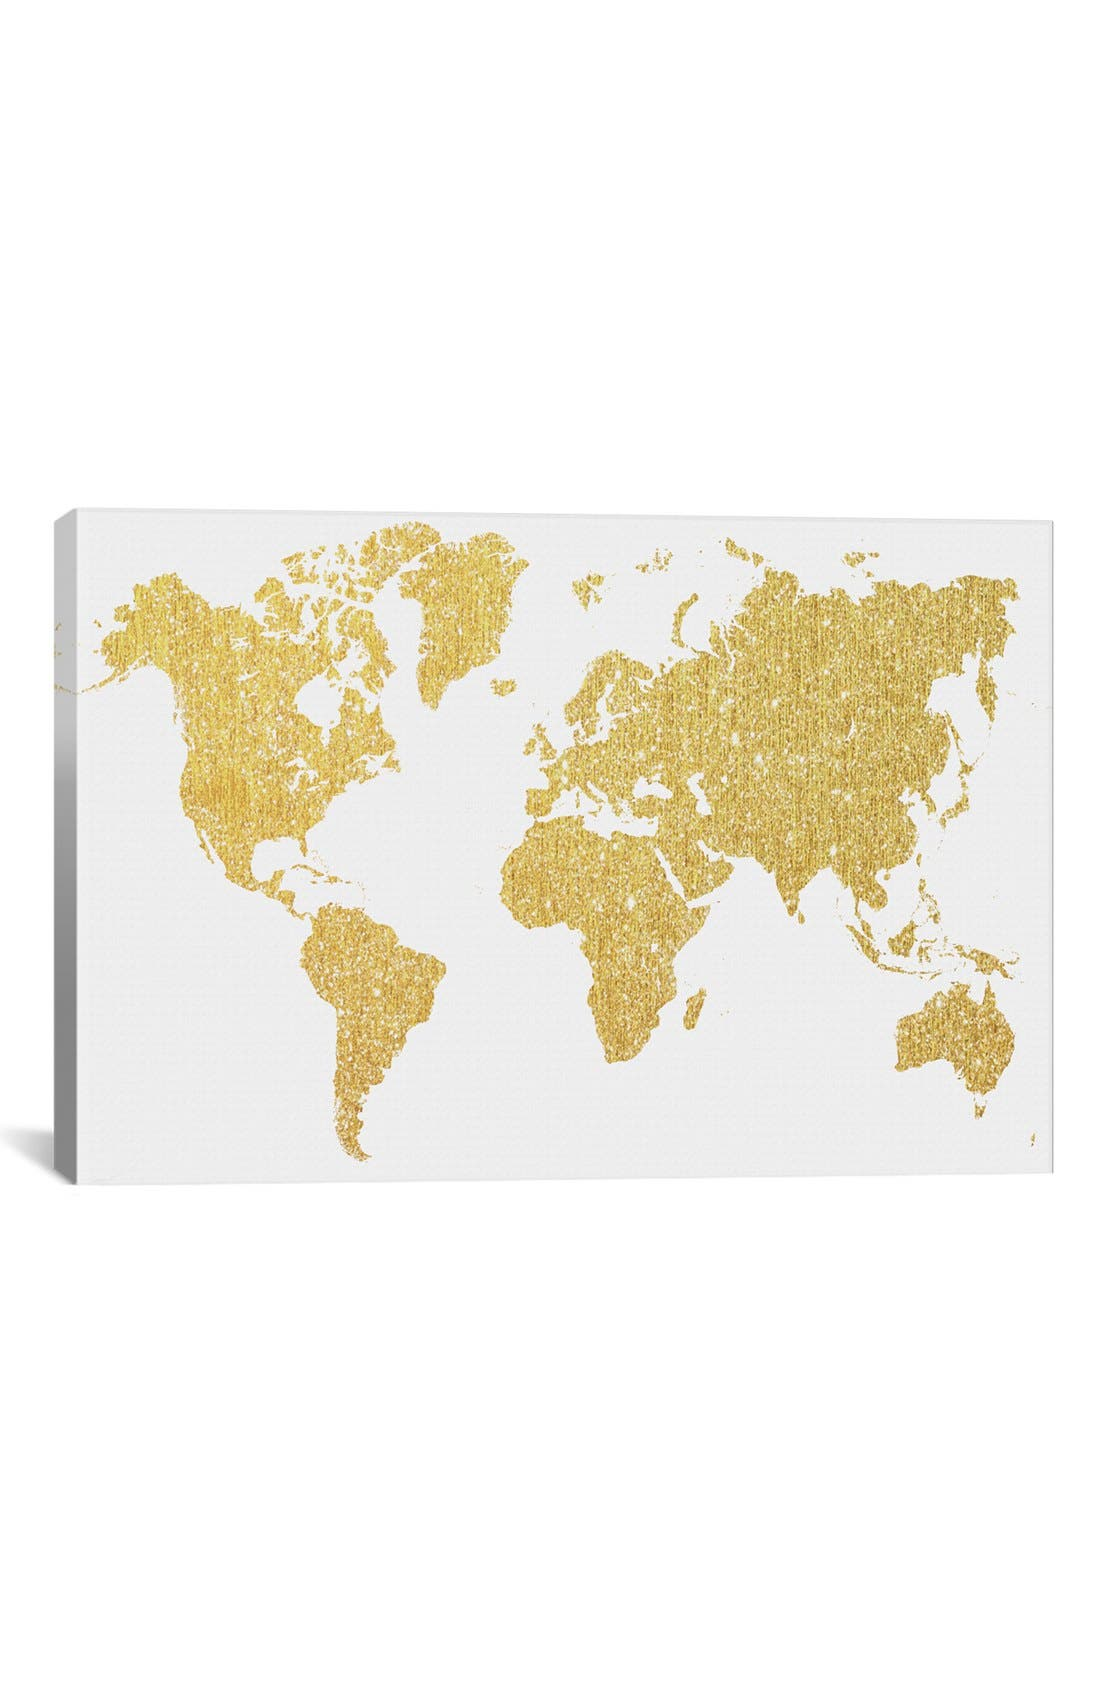 Alternate Image 1 Selected - iCanvas 'Gold Map' Giclée Print Canvas Art